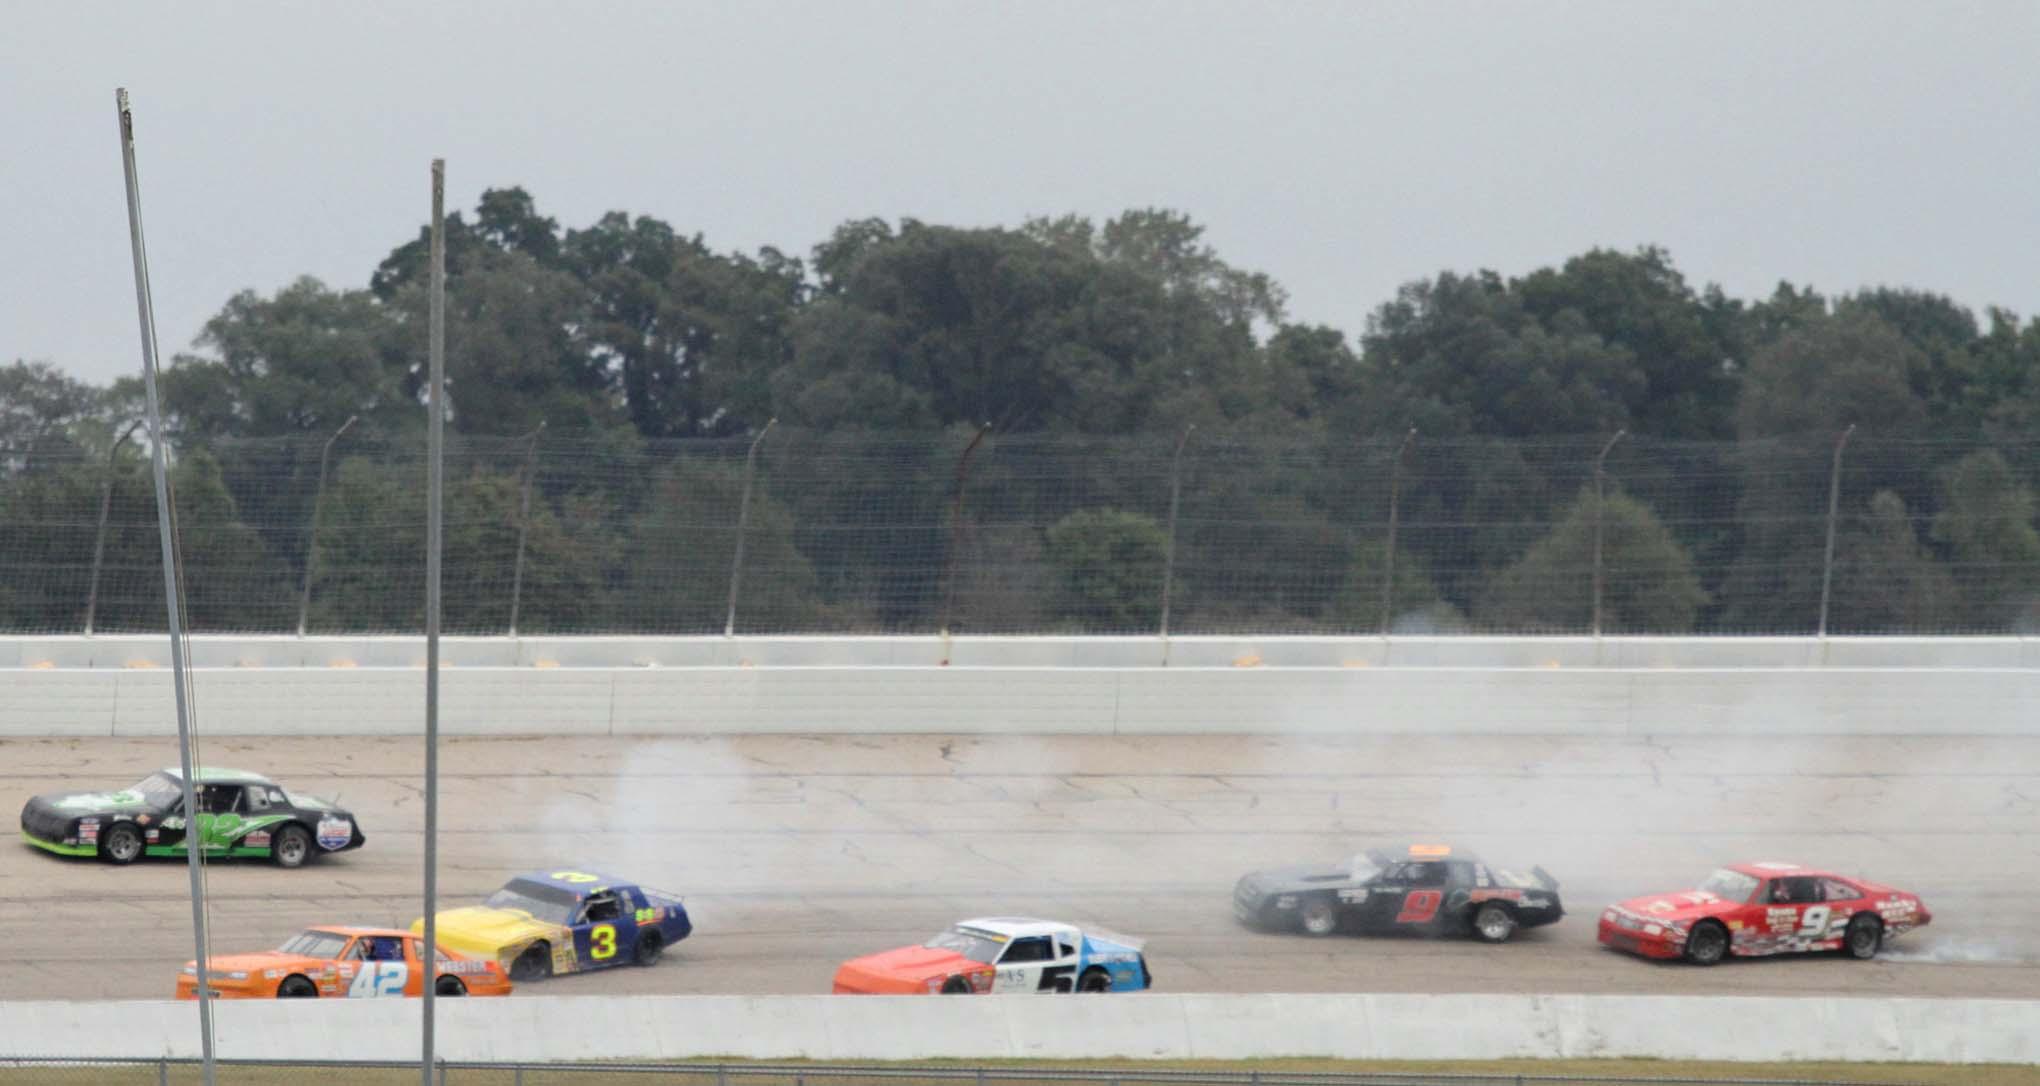 Cars scramble to avoid the spin.